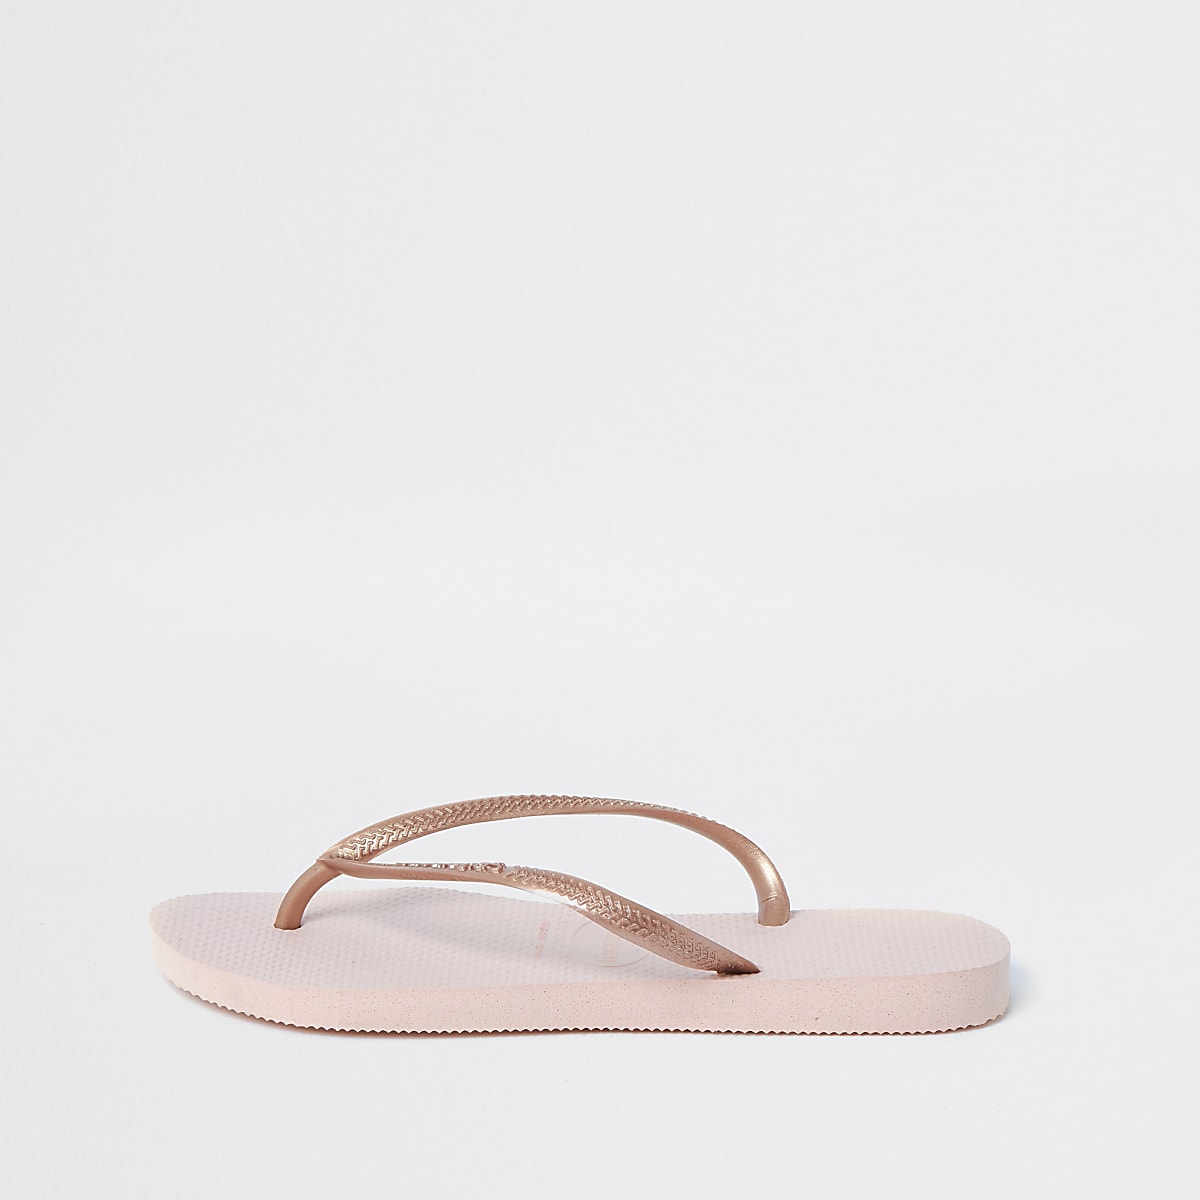 Havaianas – Tongs fines rose clair